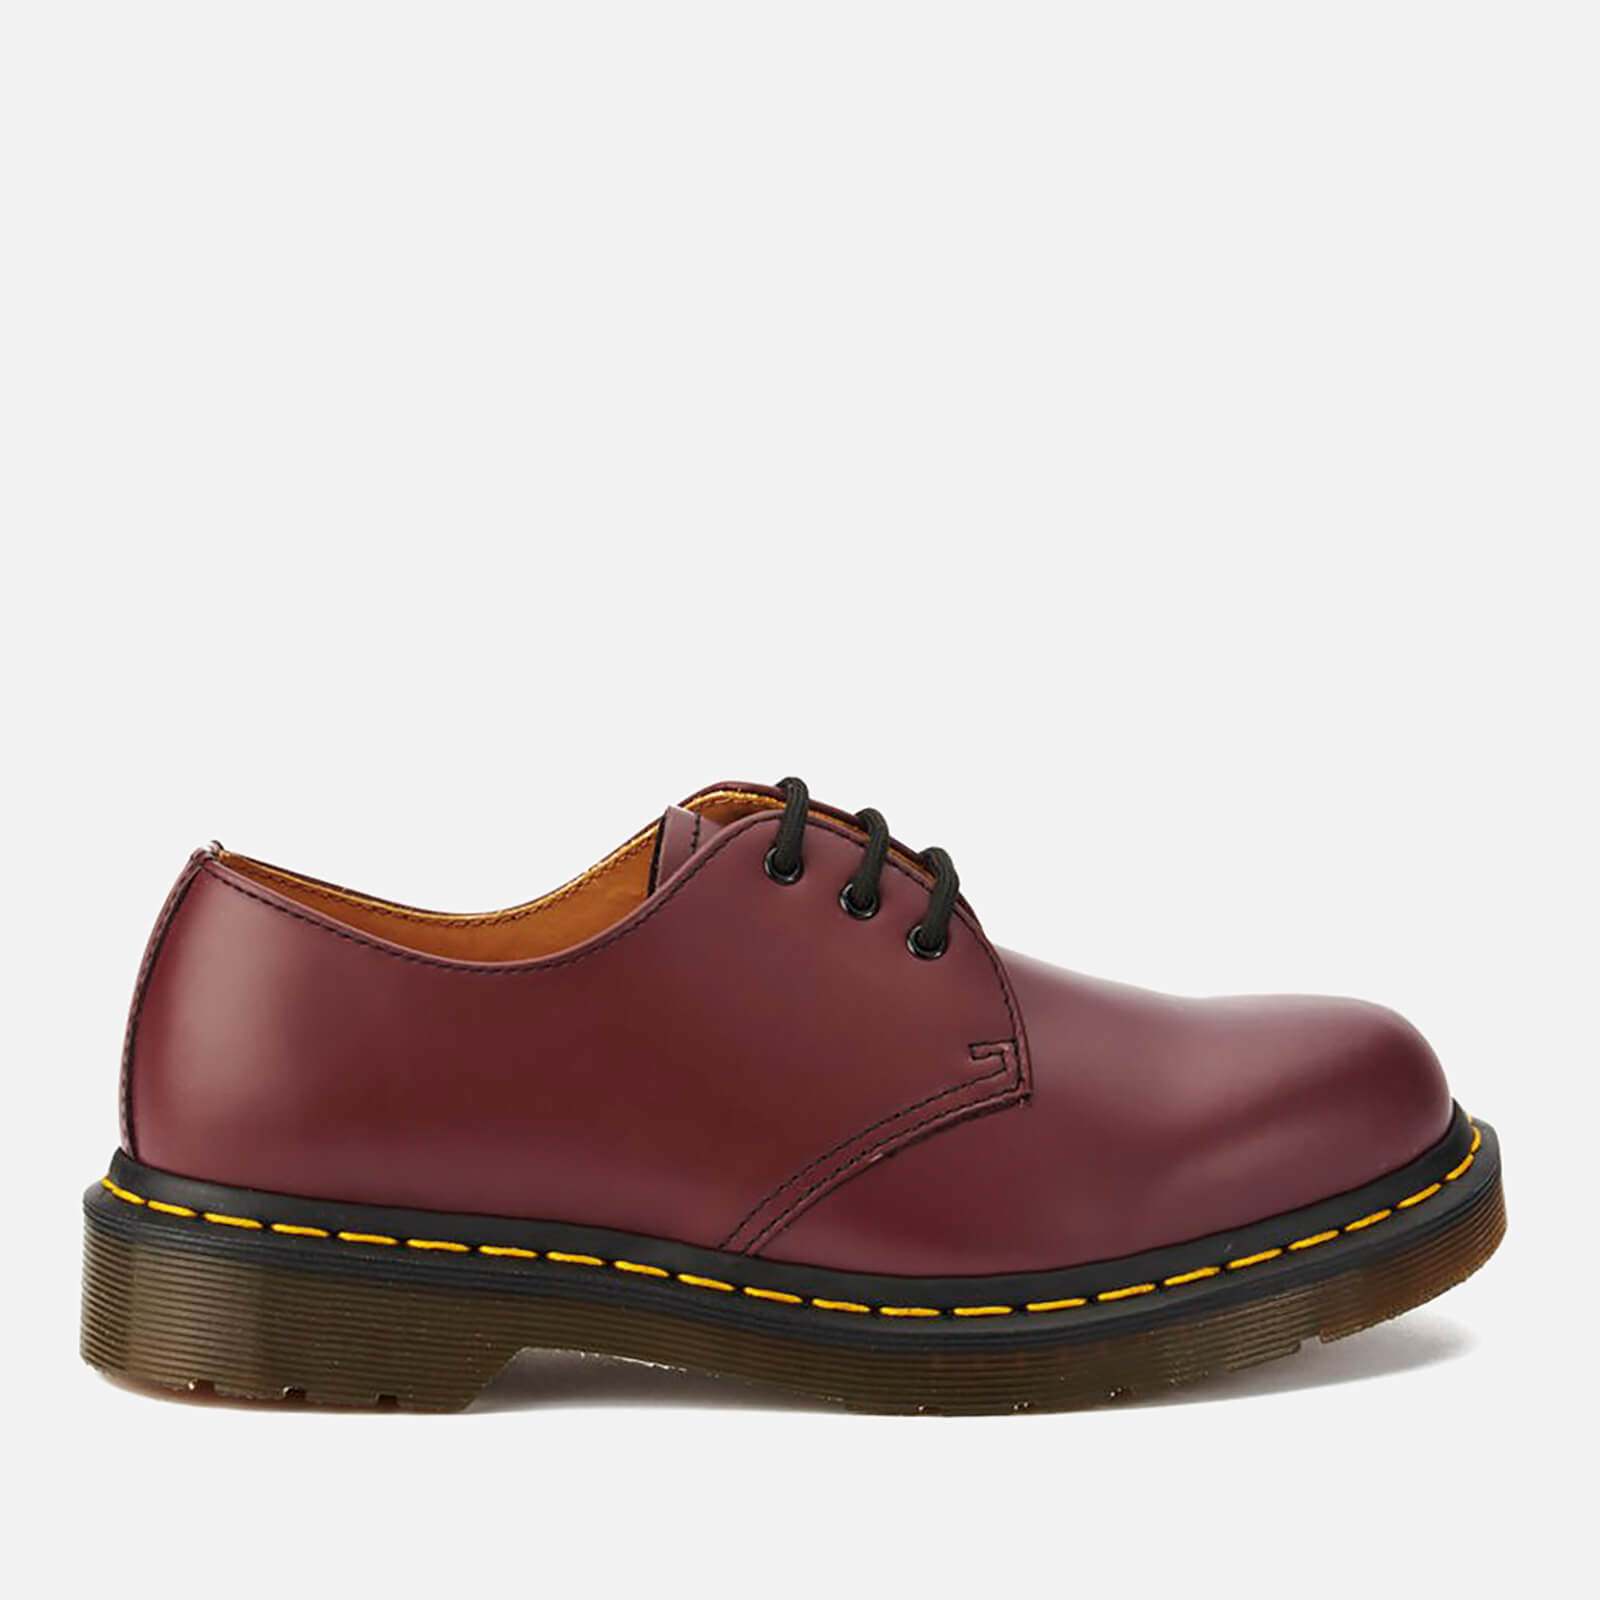 5e360e4879c Dr. Martens 1461 Smooth Leather 3-Eye Shoes - Cherry Red